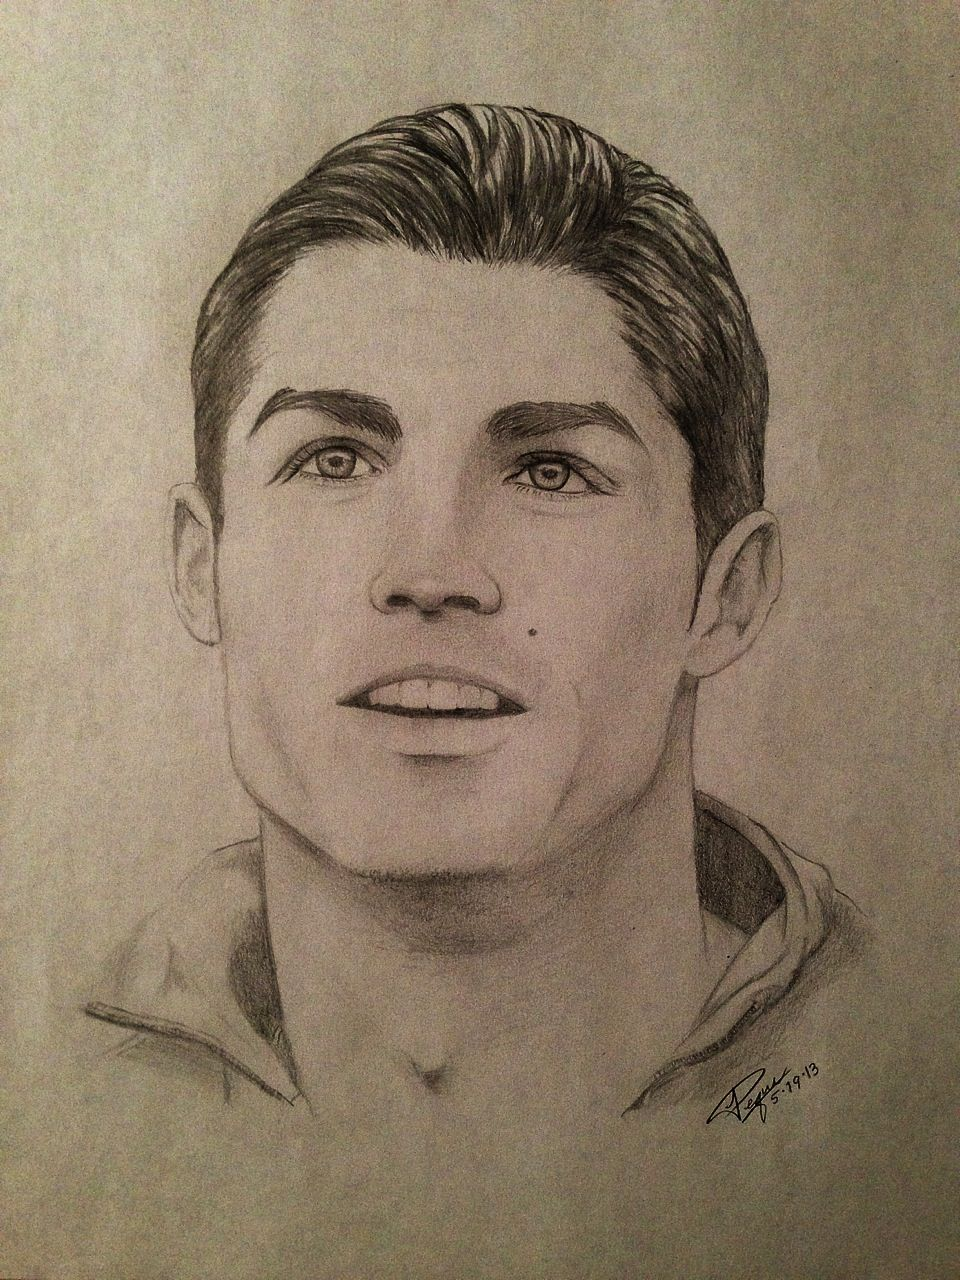 Cristiano ronaldo pencil drawing drawings in 2019 cristiano